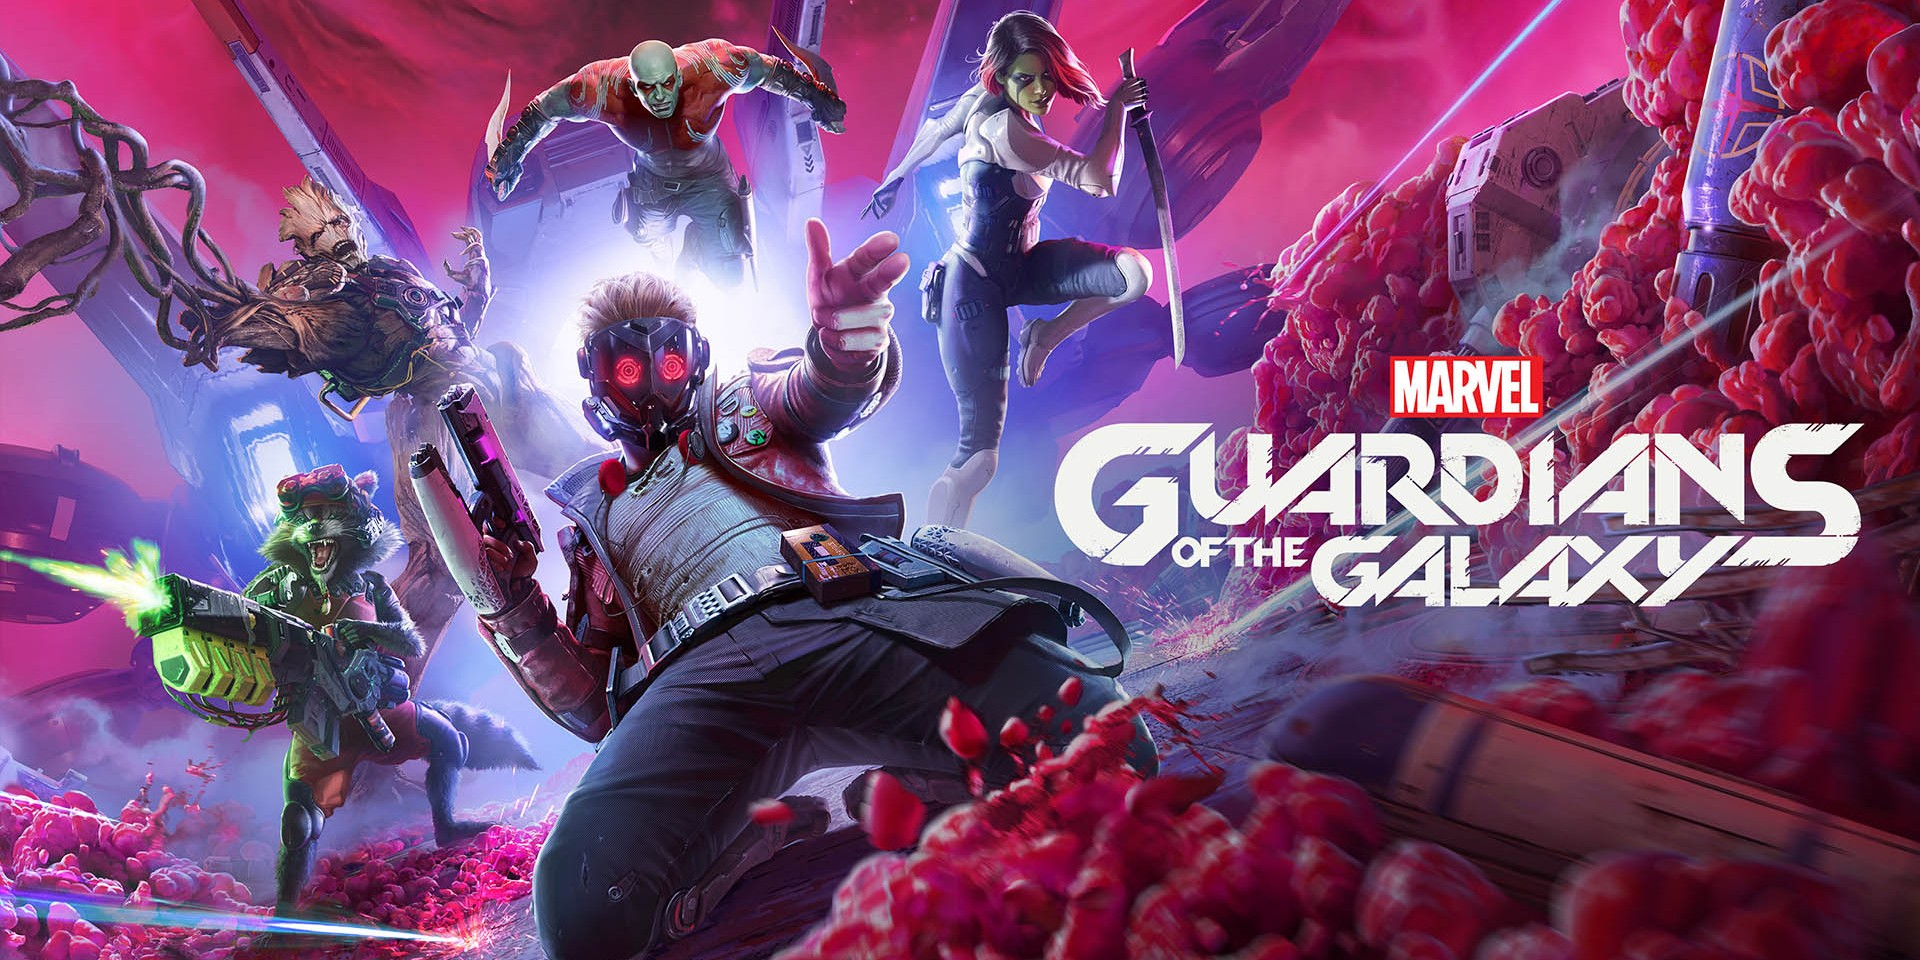 Marvel's Guardians of the Galaxy video game confirmed for PlayStation, PC, Xbox, Switch